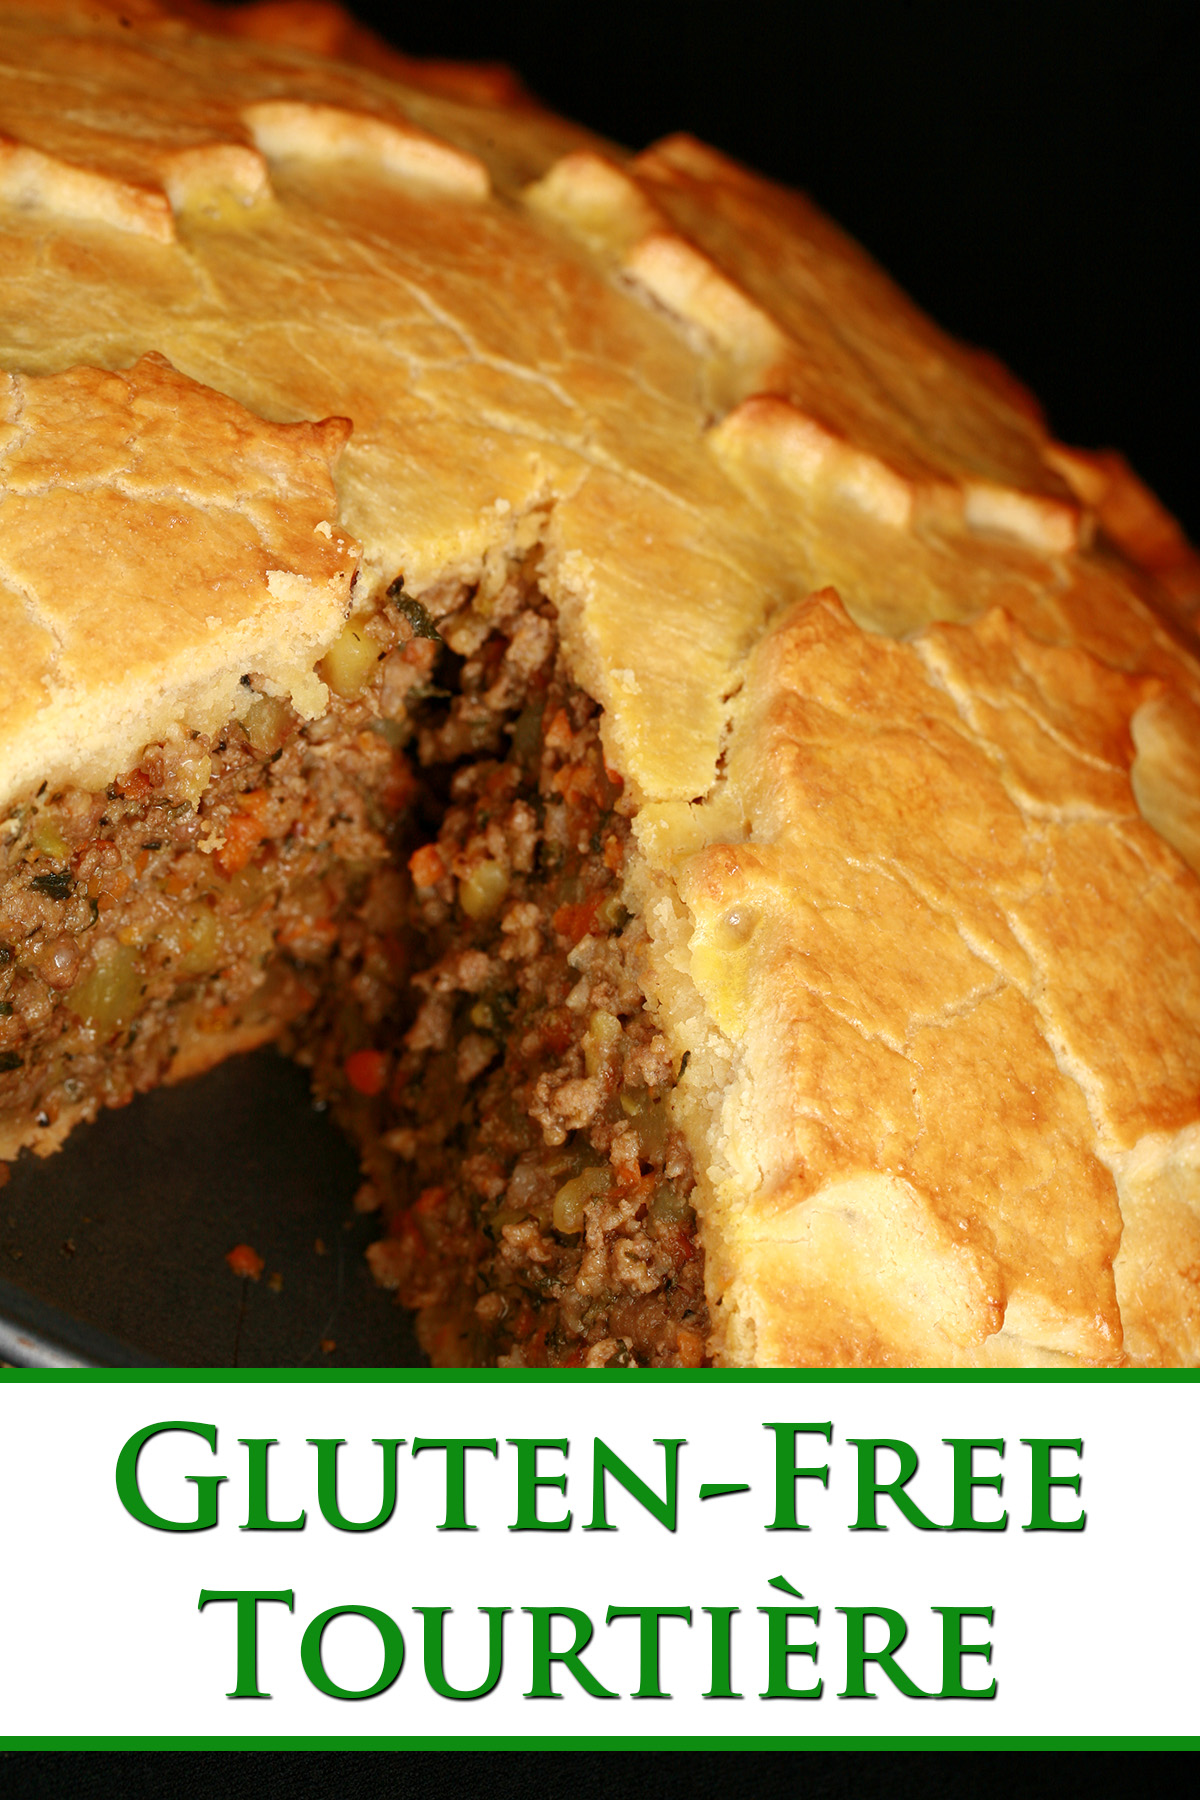 A golden brown baked meat pie, with a maple leaf design on top. There is a section cut out of it. Green text overlay reads gluten-free tourtiere.